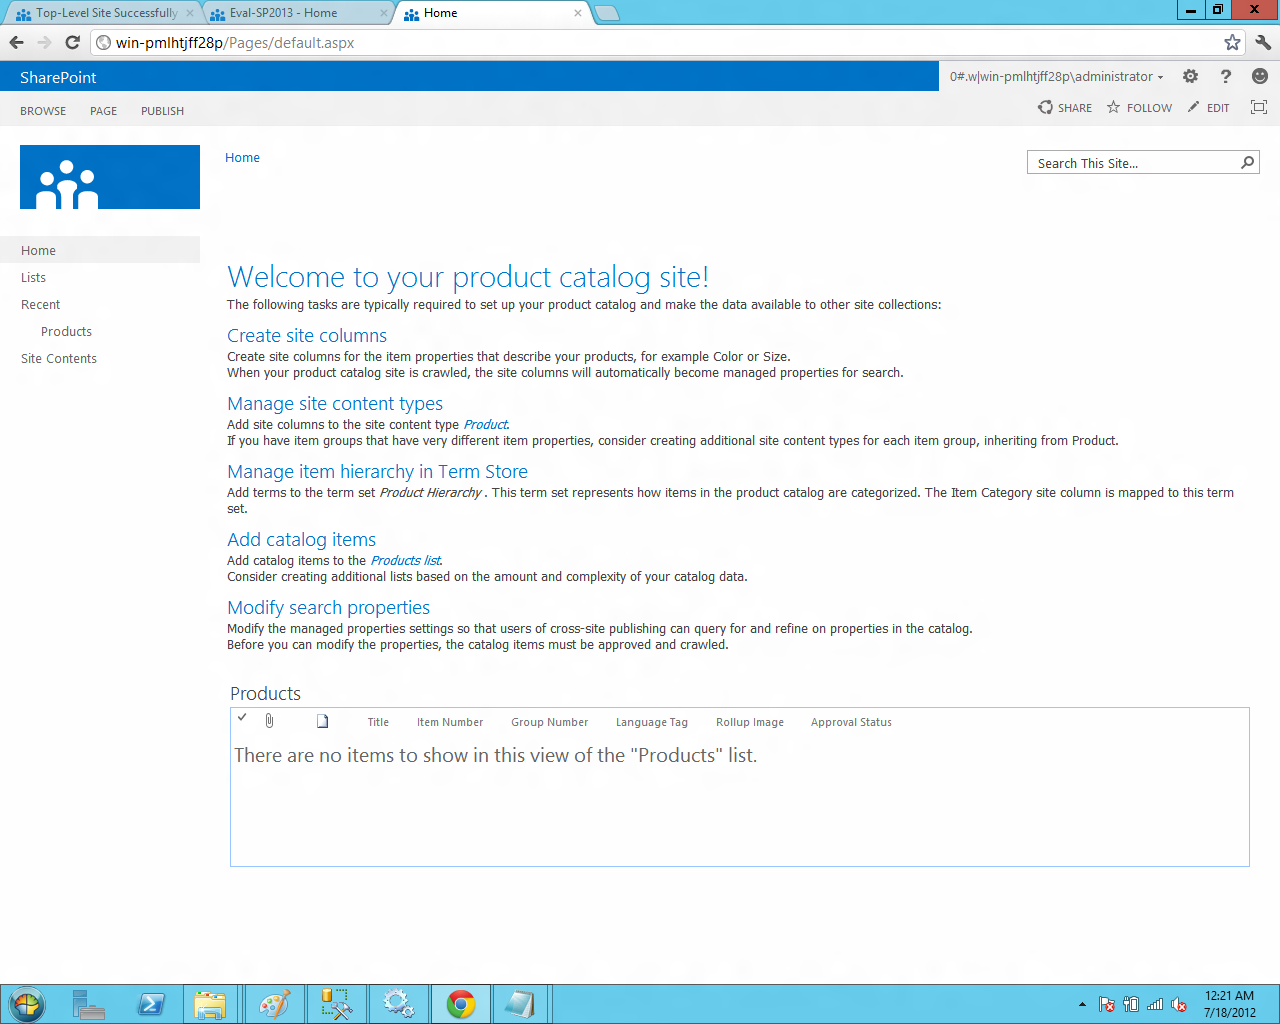 Bharath tech update installing sharepoint server 2013 as stand new site product catalog site template long way to click and explorearepoint 2013 maxwellsz